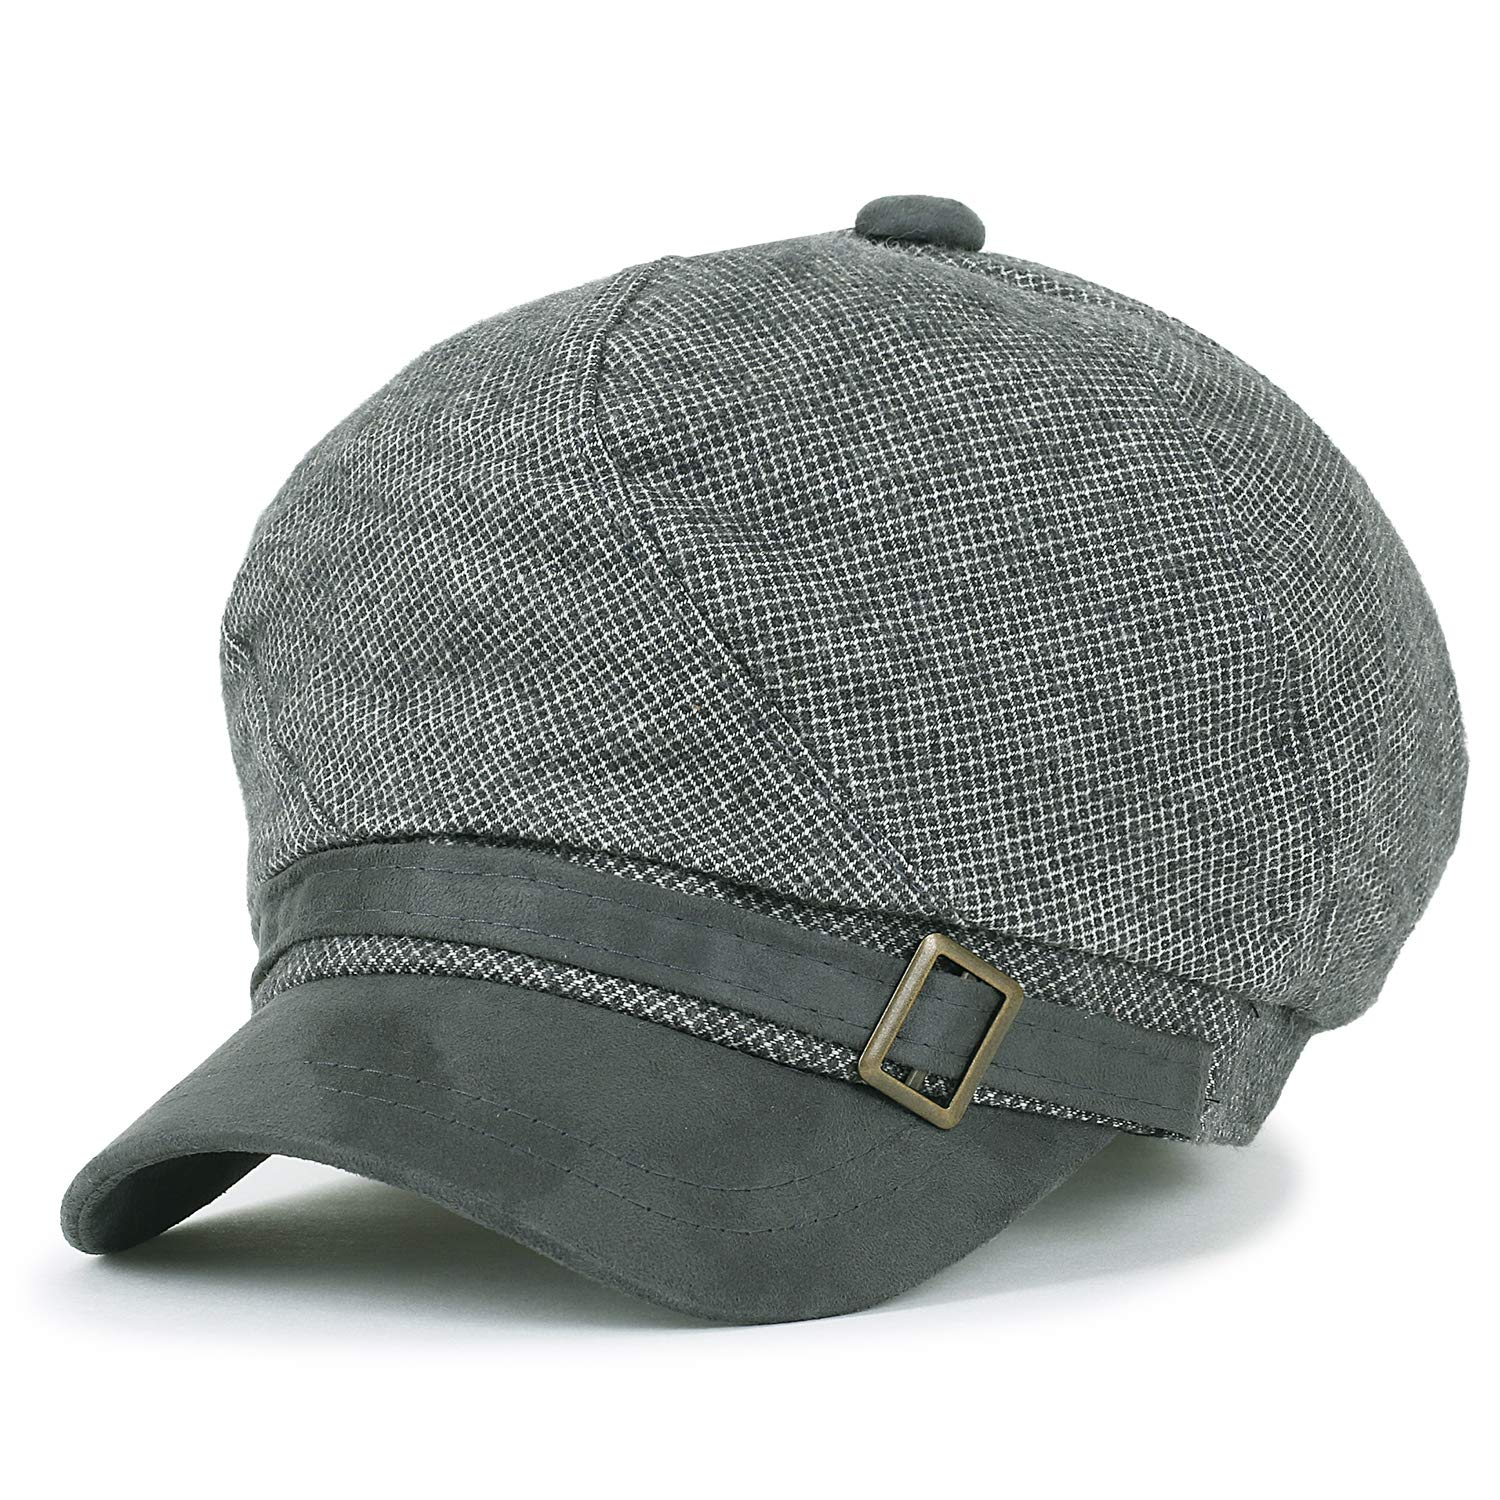 ililily Mixed Color Panel Newsboy Cabbie Cap Belted Ivy Flat Hunting Hat, Grey